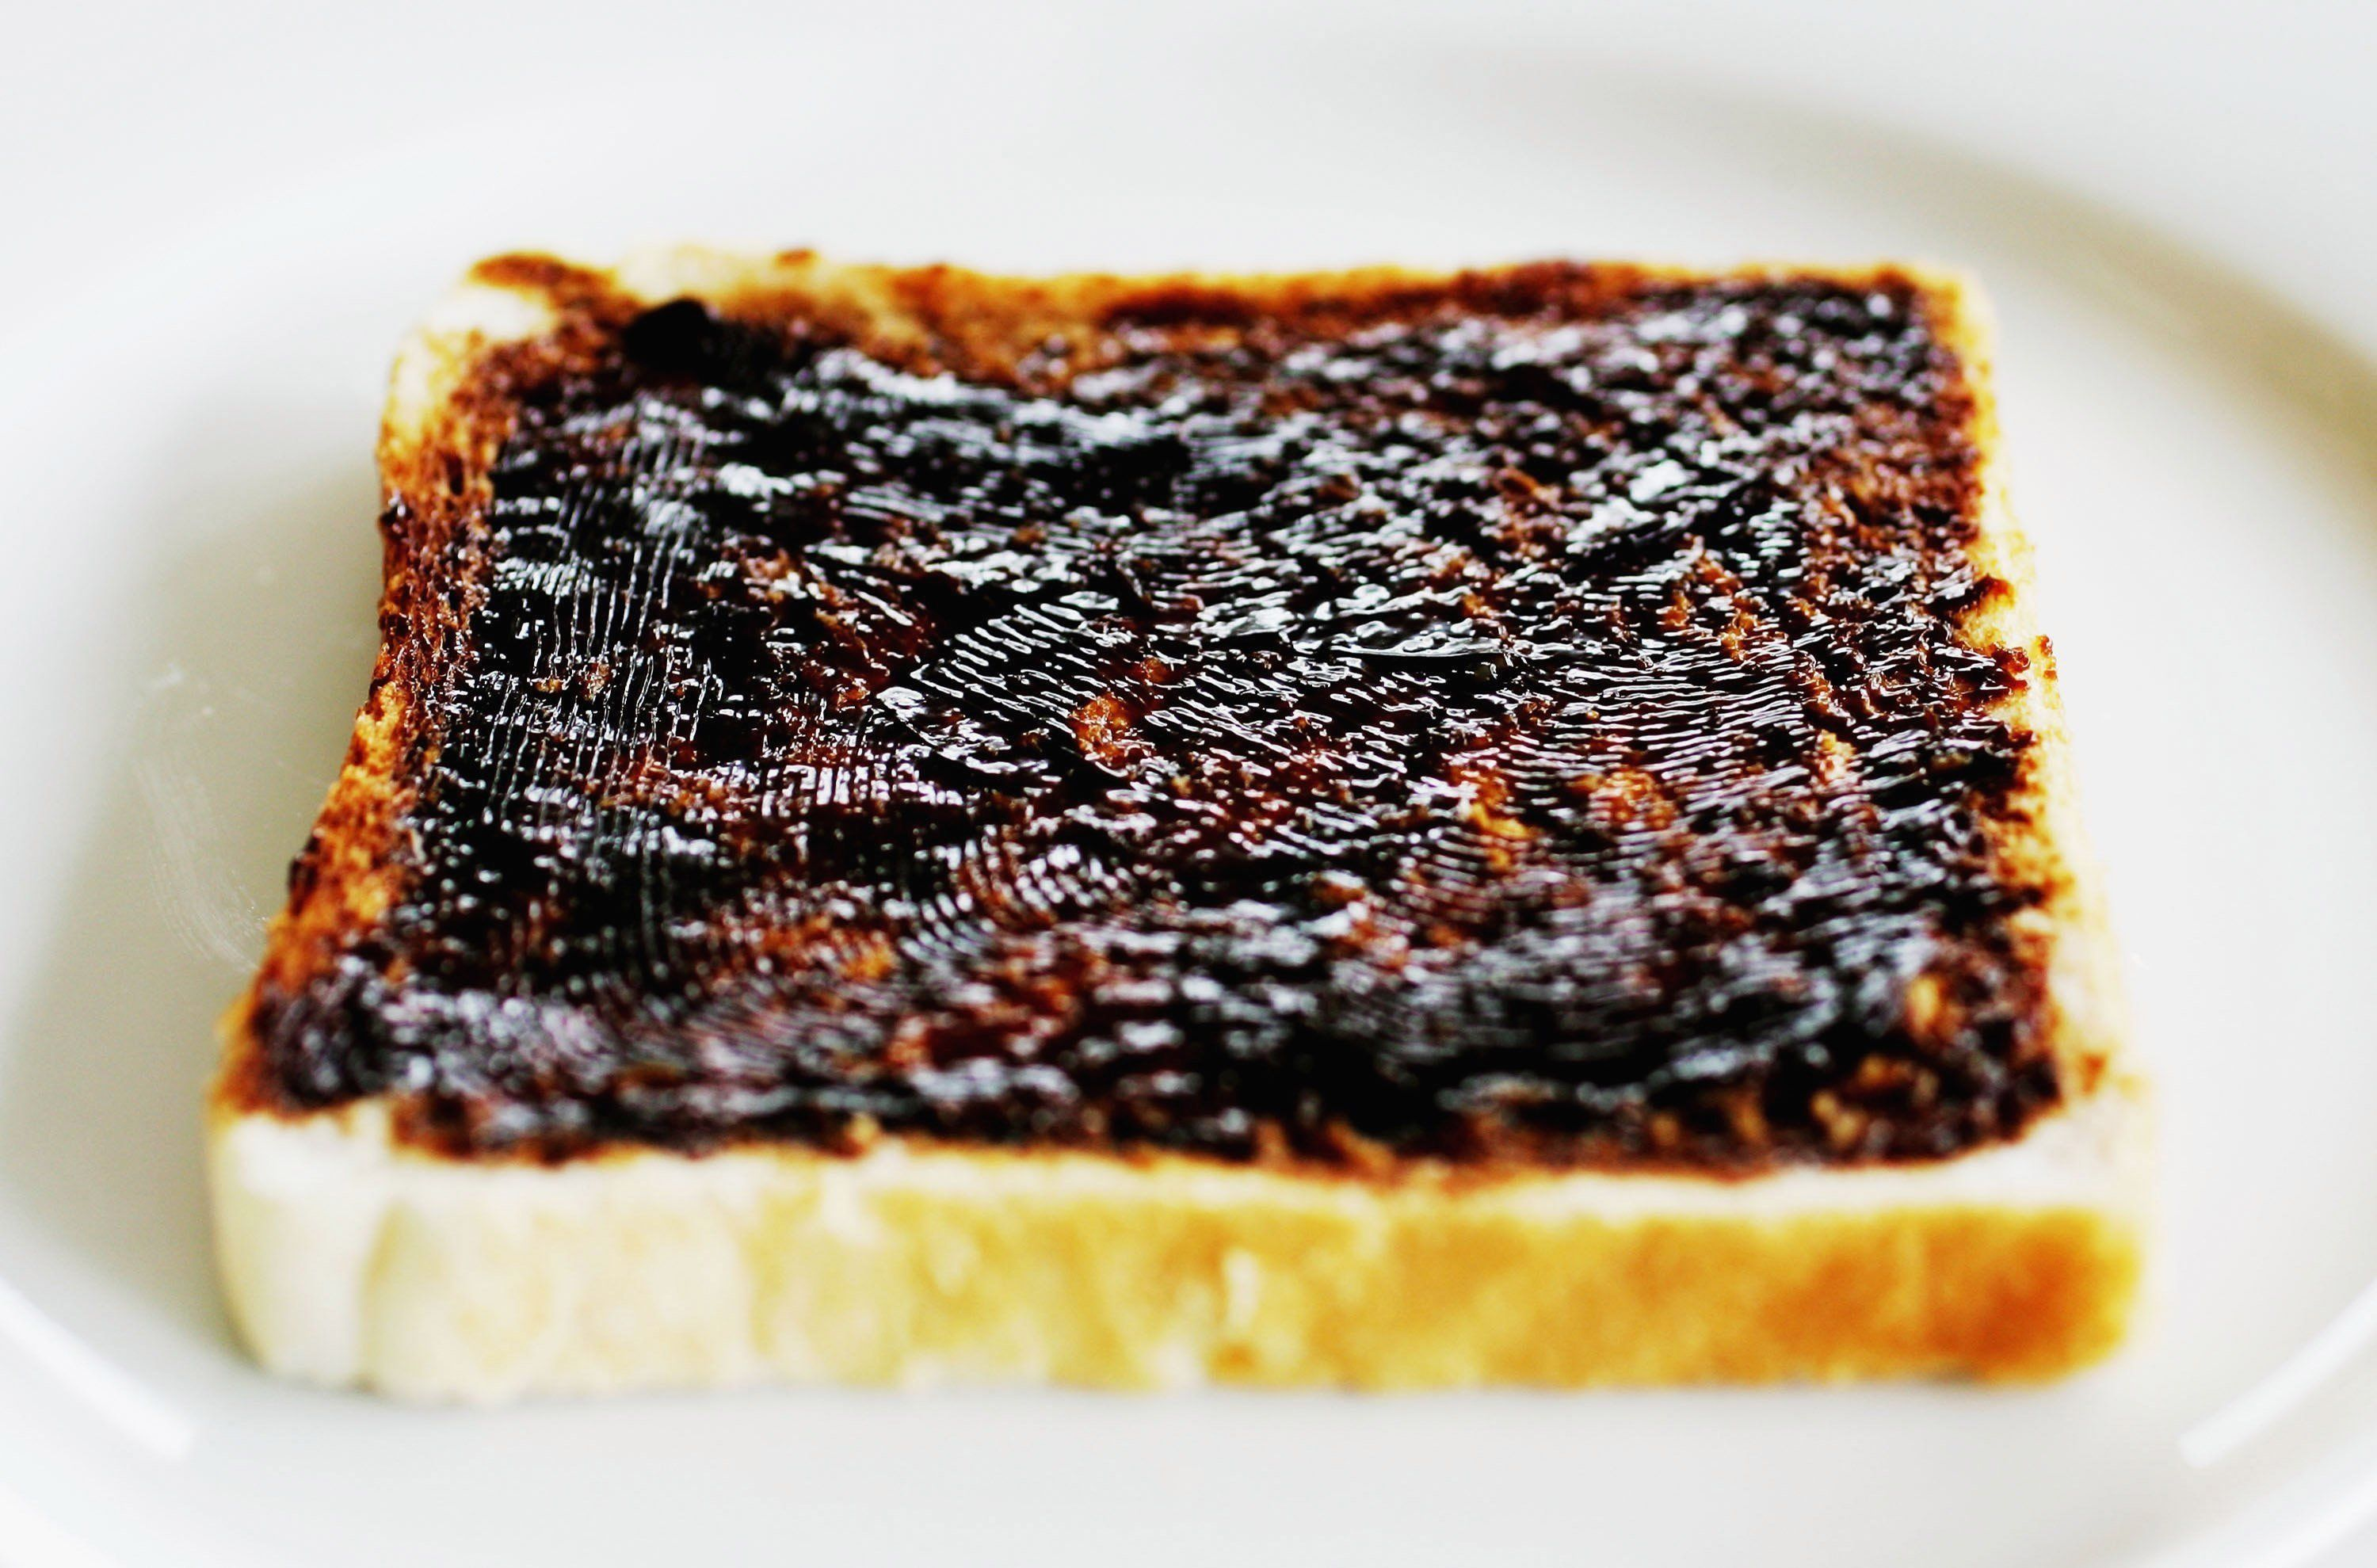 SYDNEY, NSW - JANUARY 25:  A Vegemite sandwich is pictured January 25, 2006 in Sydney, Australia. Vegemite, an Australian culinary specialty, is concentrated yeast extract originally made from a by-product of the beer brewing process. An estimated nine out of ten Australian pantries contain at least one jar of Vegemite, with 46% of Australians having eaten Vegemite at least once during a calendar week. The Vegemite sandwich, a staple of Australian school lunch boxes, was immortalised in the Men At Work song 'Down Under' in 1982. The nation will celebrate Australia Day on January 26.  (Photo Illustration by Ian Waldie/Getty Images)